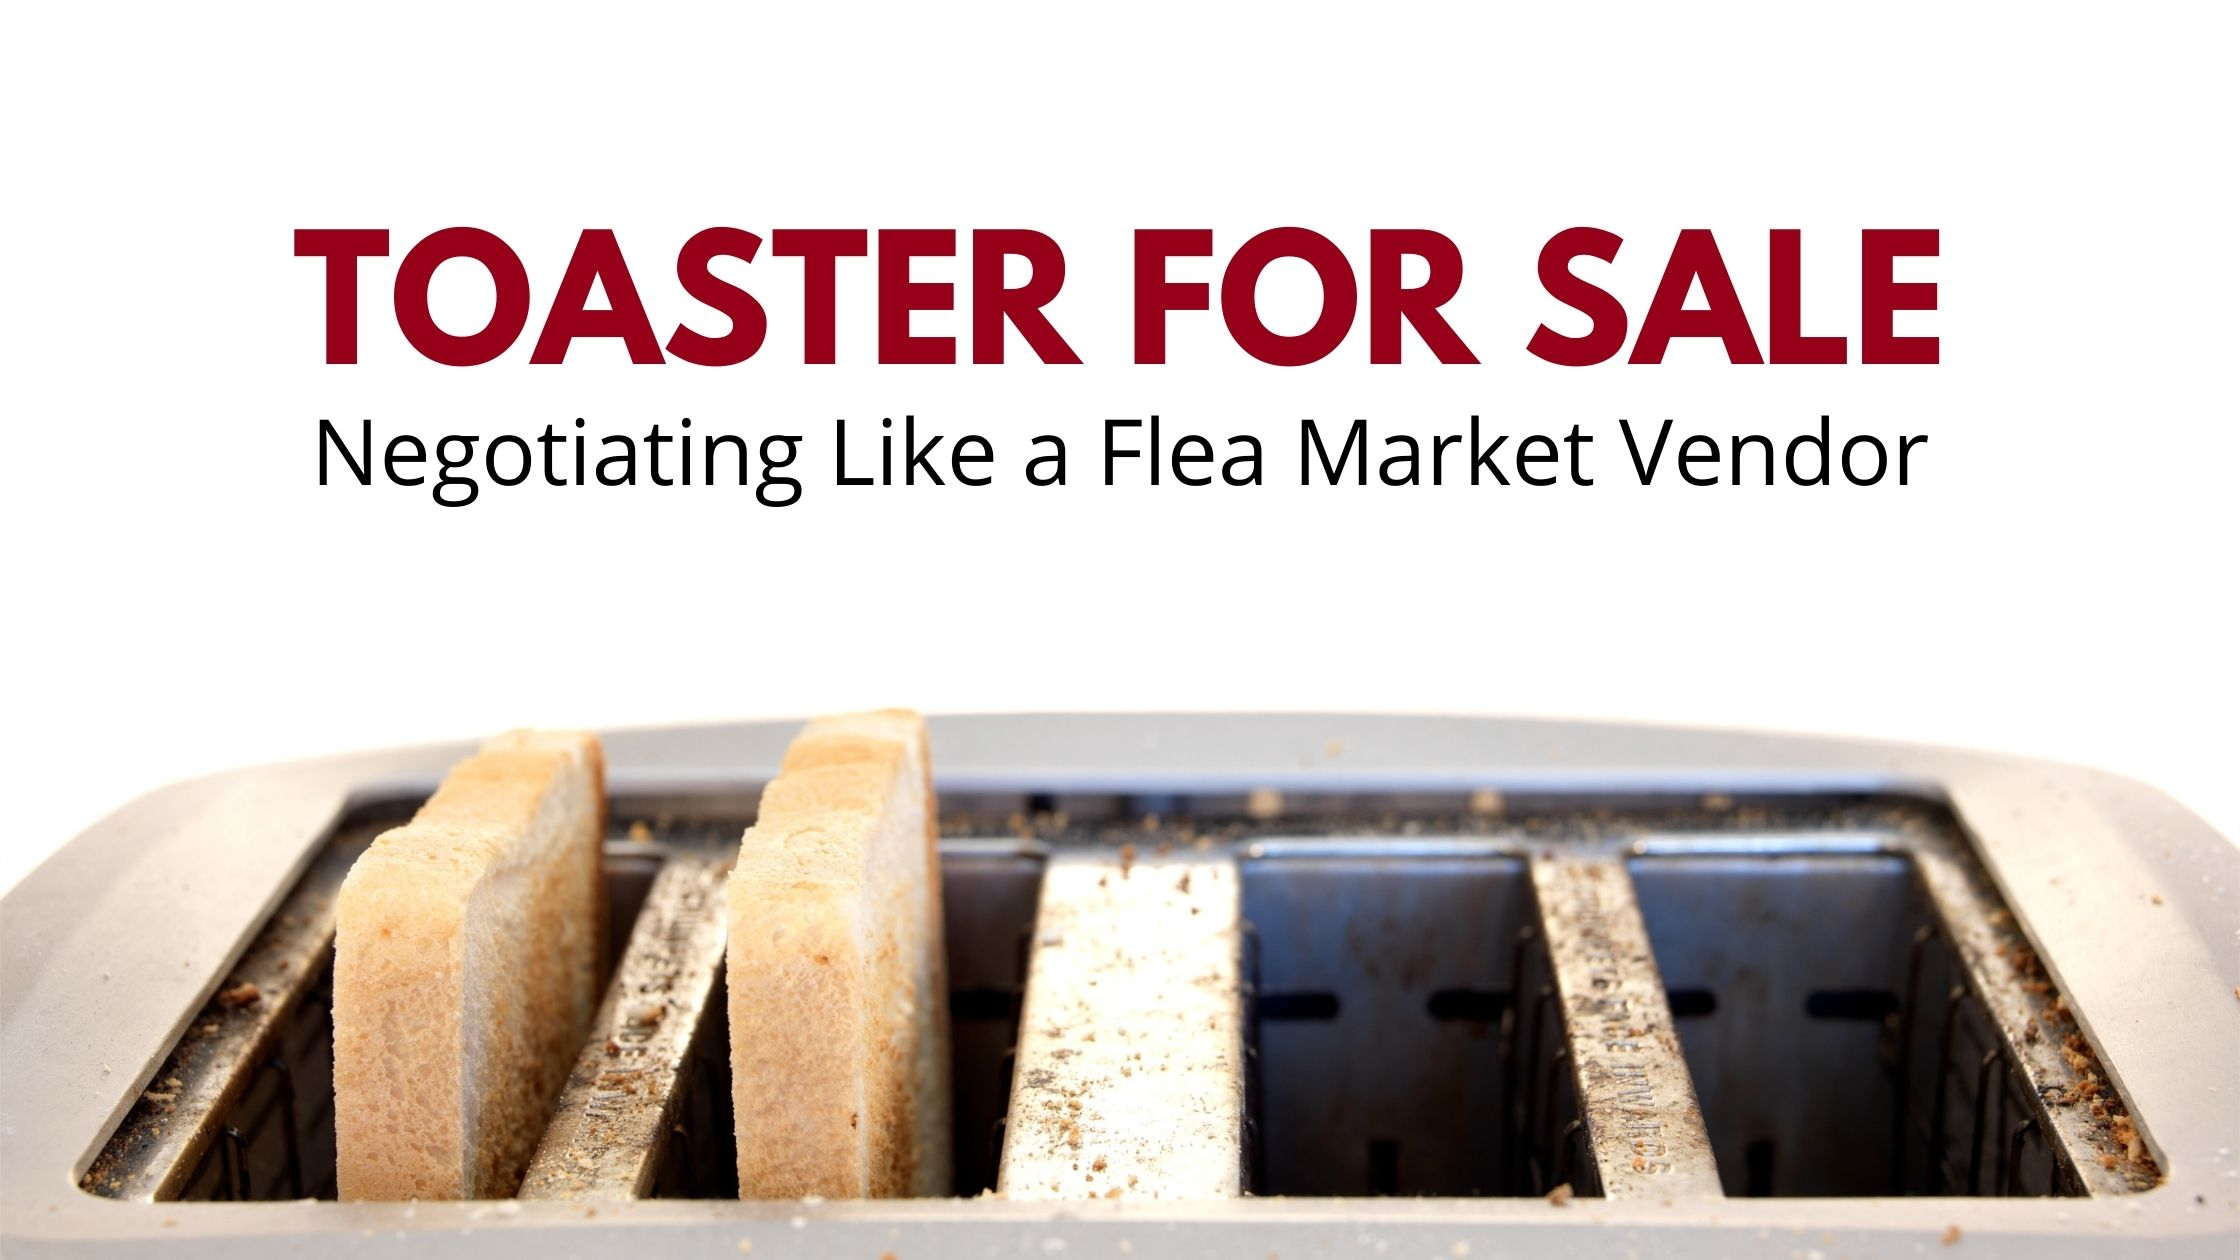 sales and negotiating like a flea market vendor